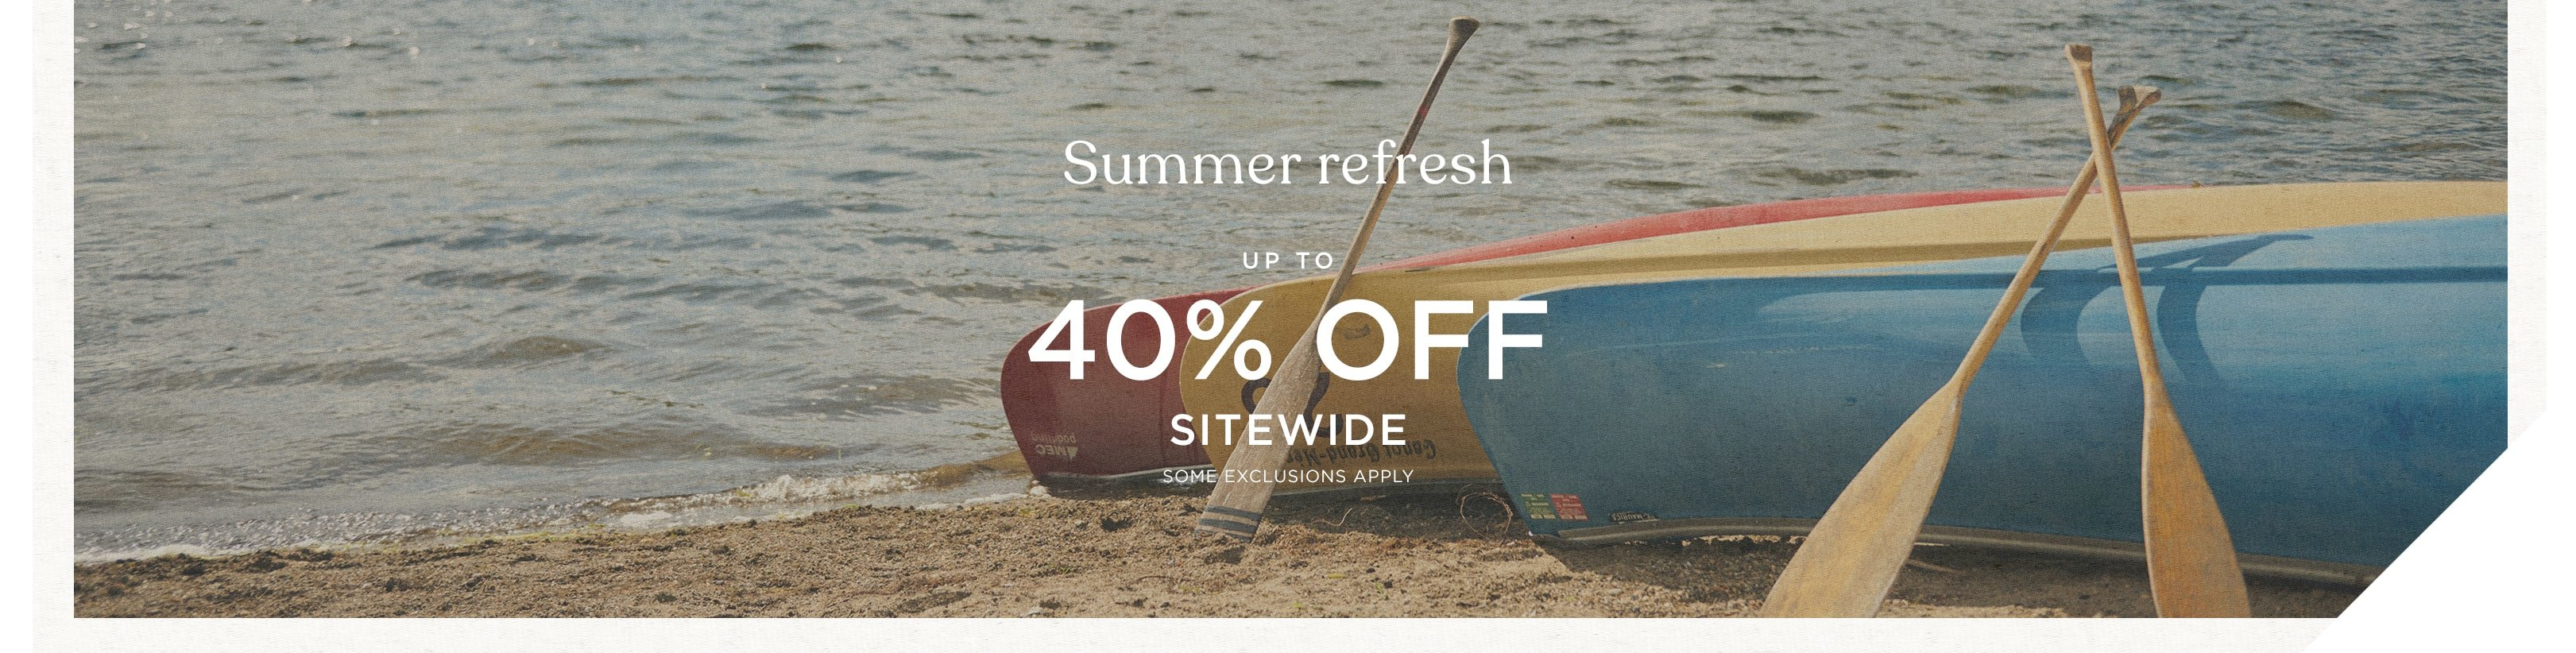 Up to 40% off sitewide some exclusions apply